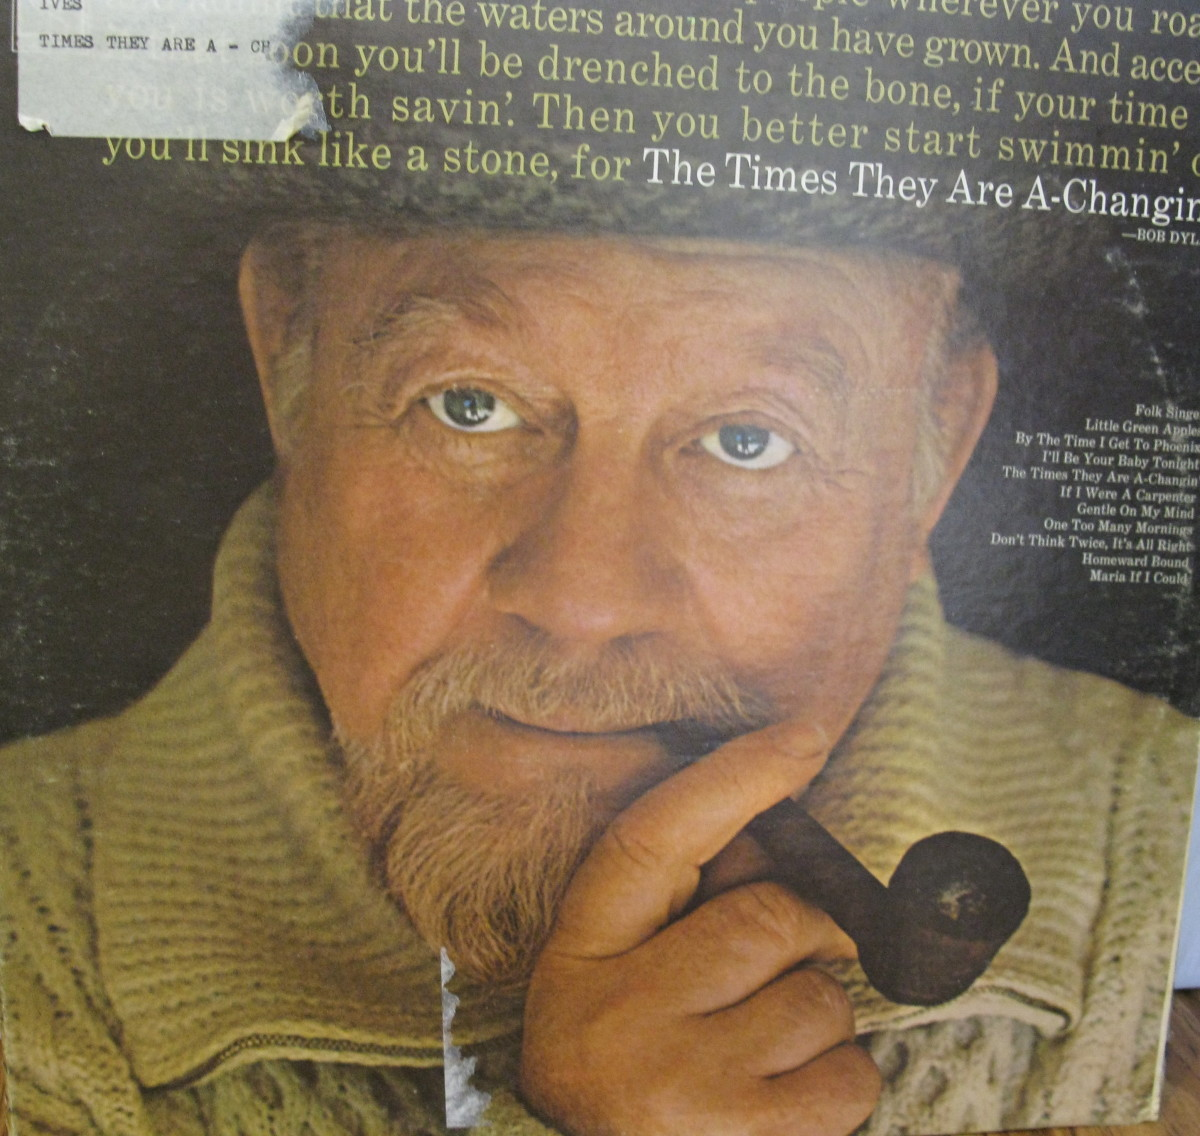 "Burl Ives and album """"The times They Are A-Changin'"""